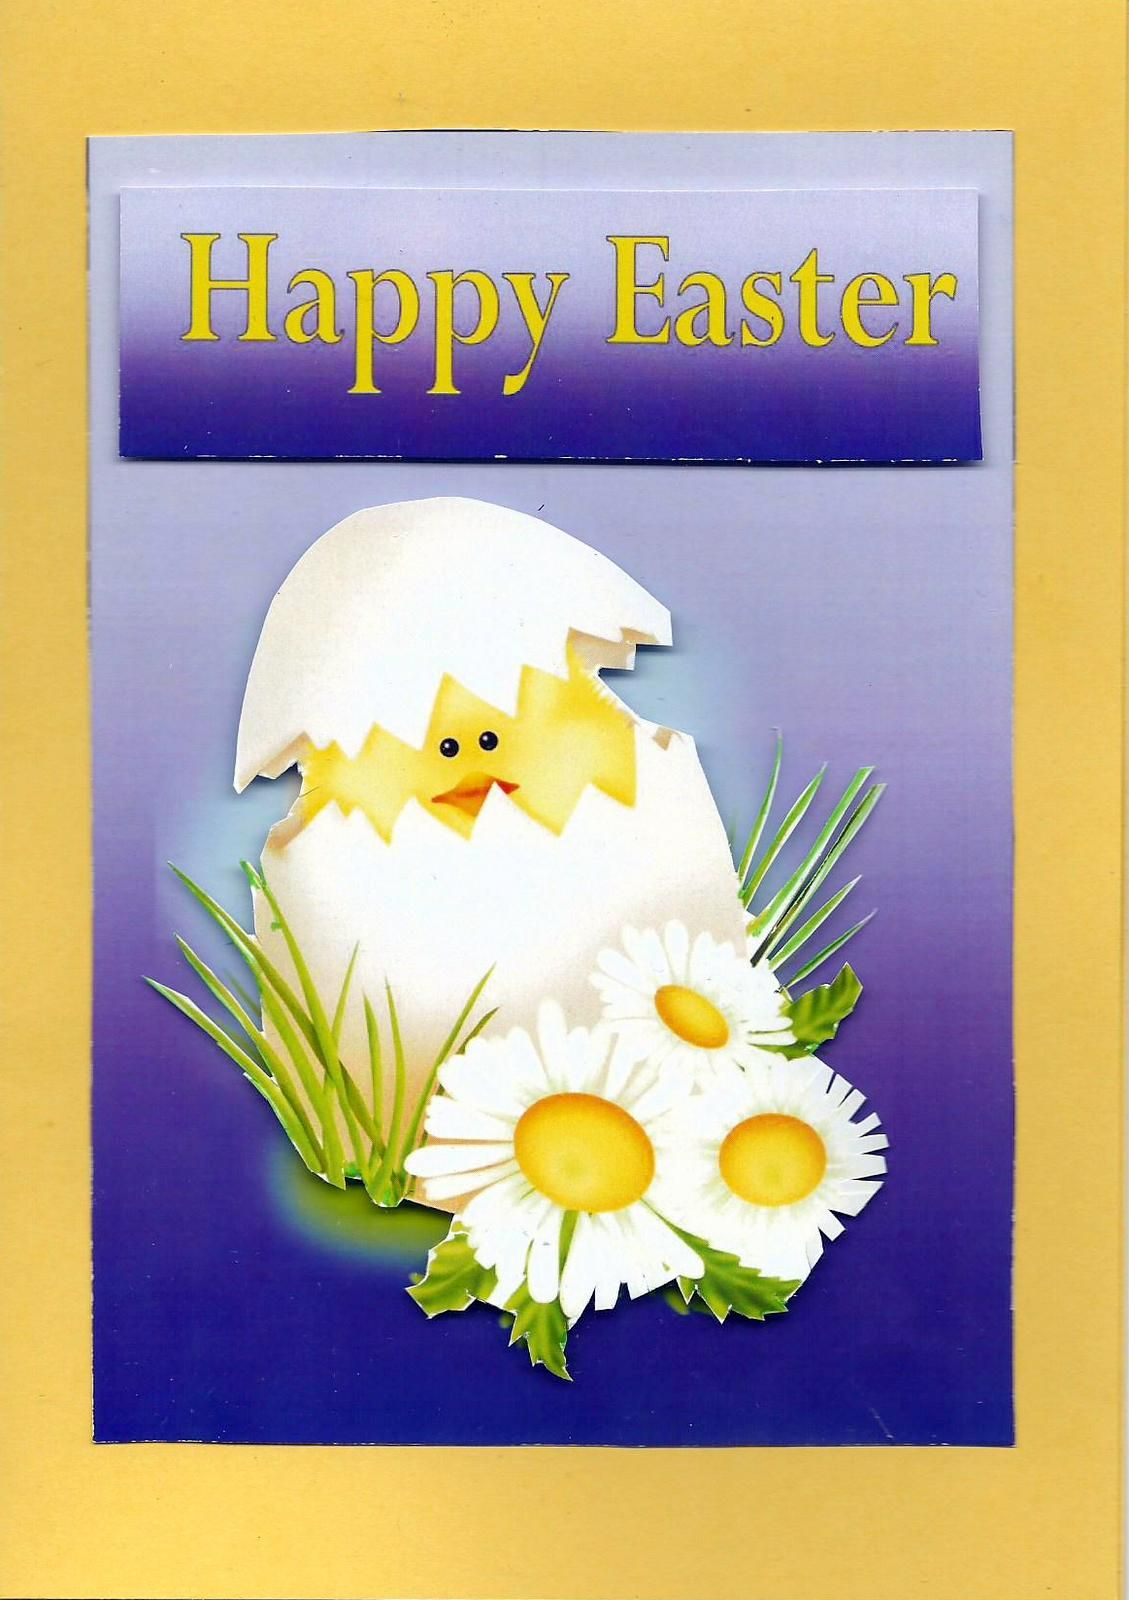 Happy easter chick wowthankyou craftfest pinterest buy handmade gifts and personalised accessories from uk designers on wowthankyou negle Choice Image